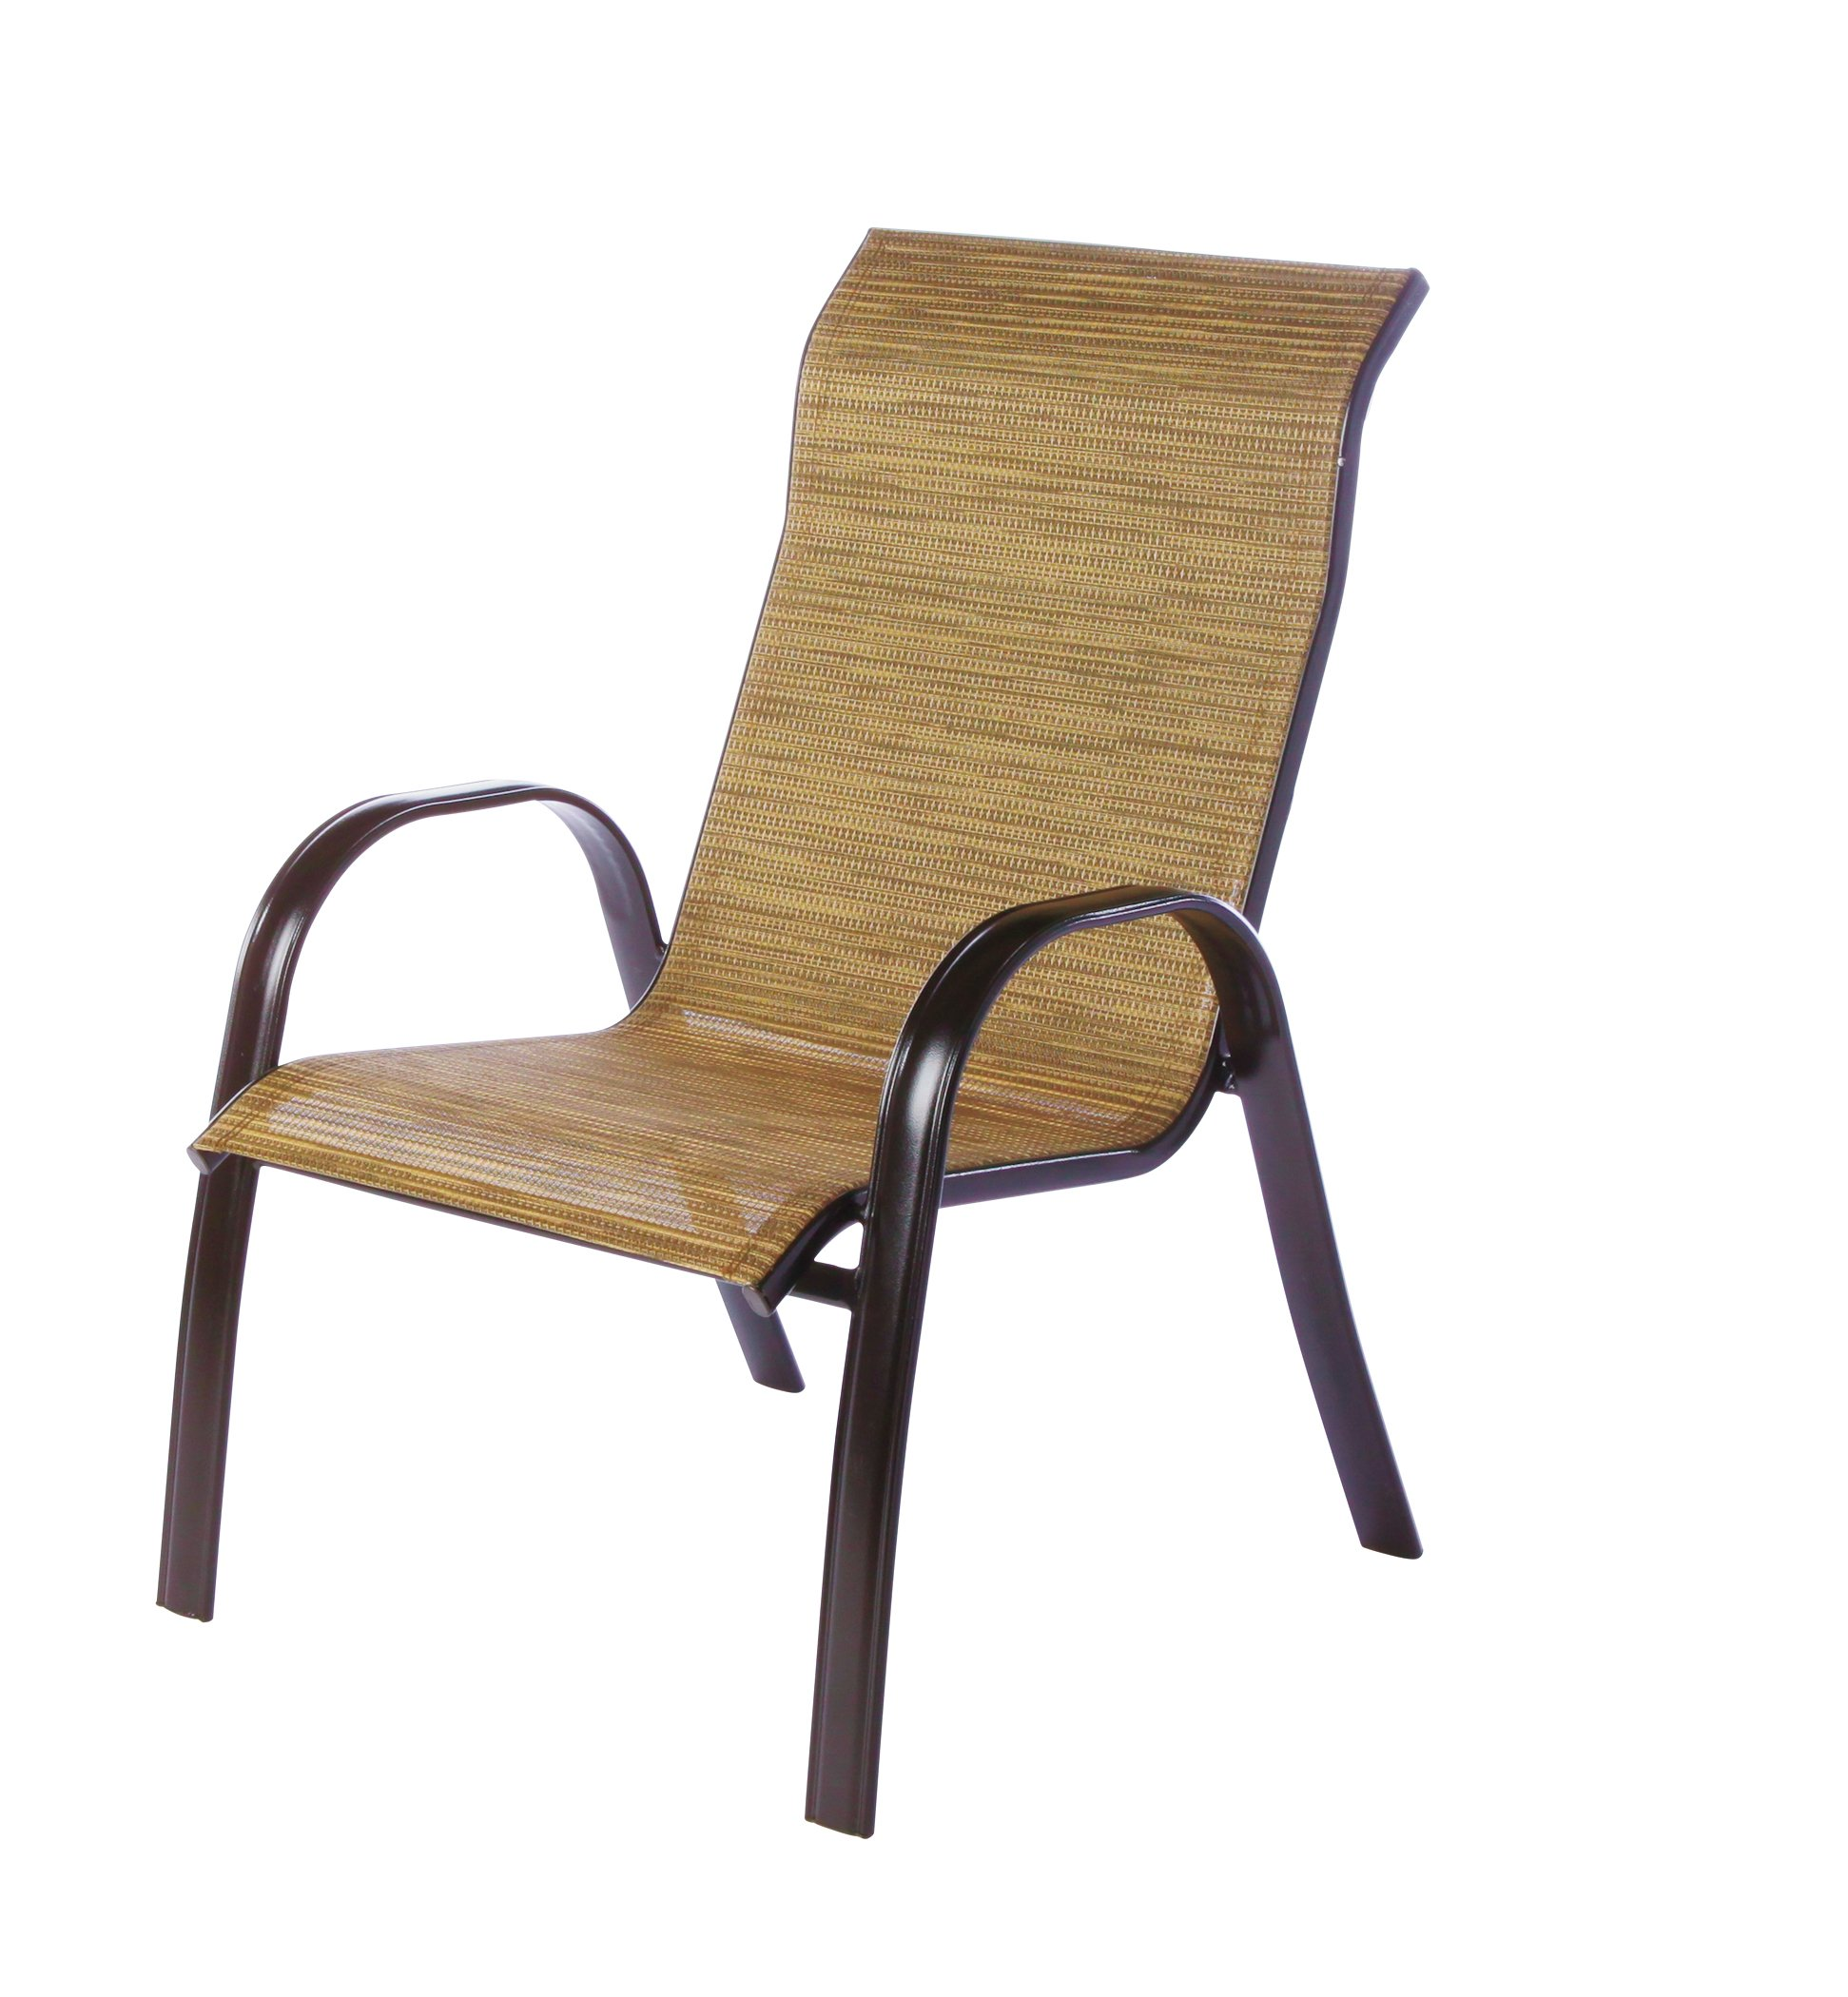 Outdoor Solutions Oversized Sling Chair Bamboo Shop Furniture